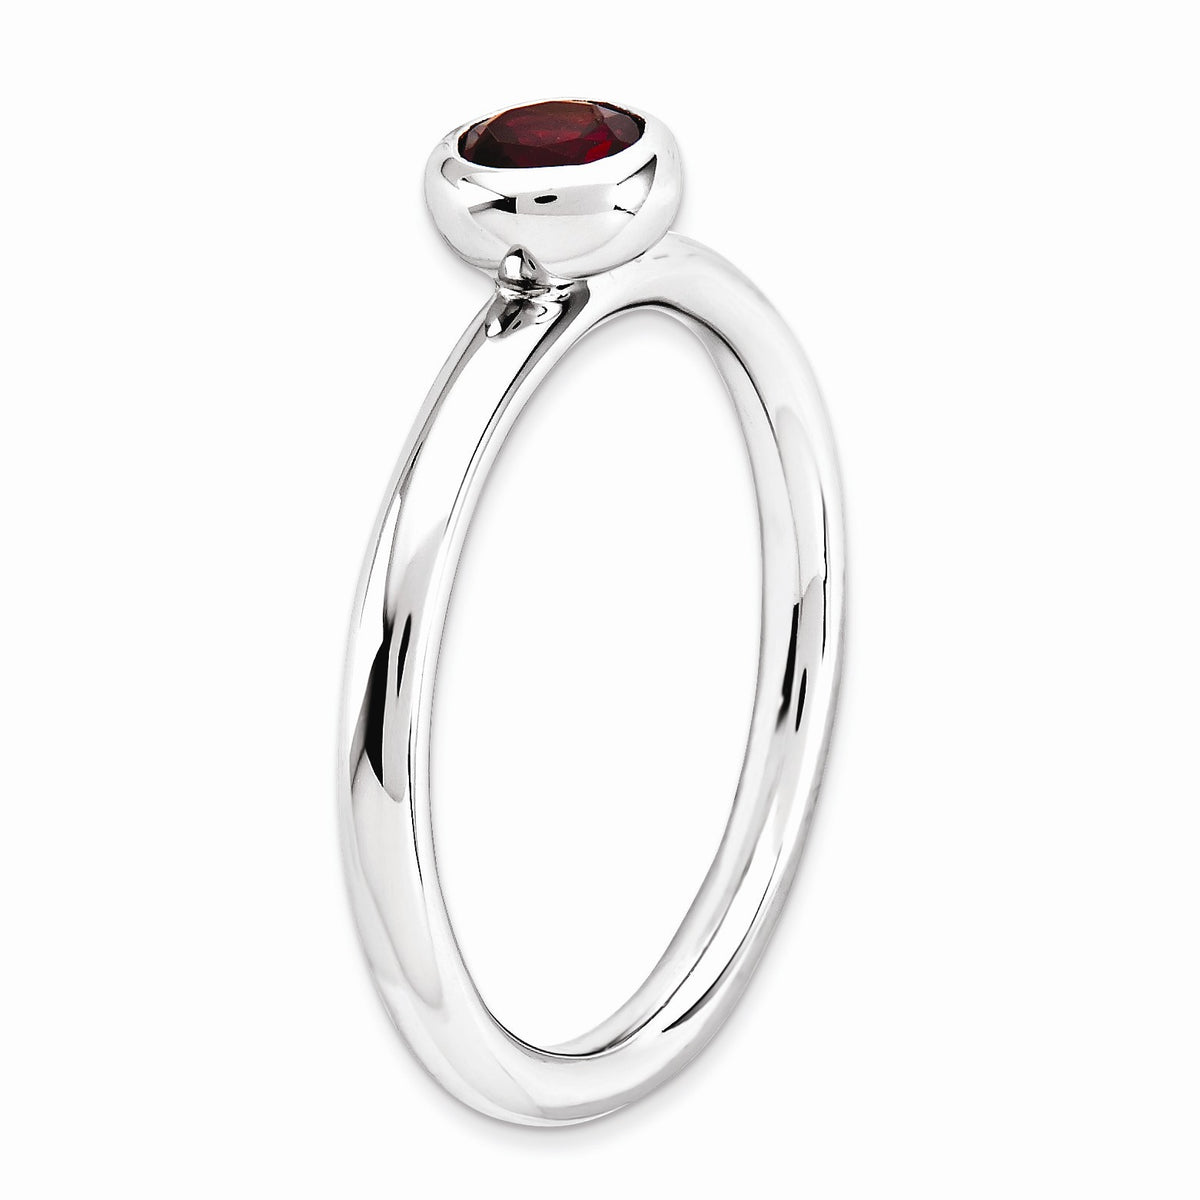 Alternate view of the Sterling Silver & Garnet Stackable Low Profile 5mm Solitaire Ring by The Black Bow Jewelry Co.